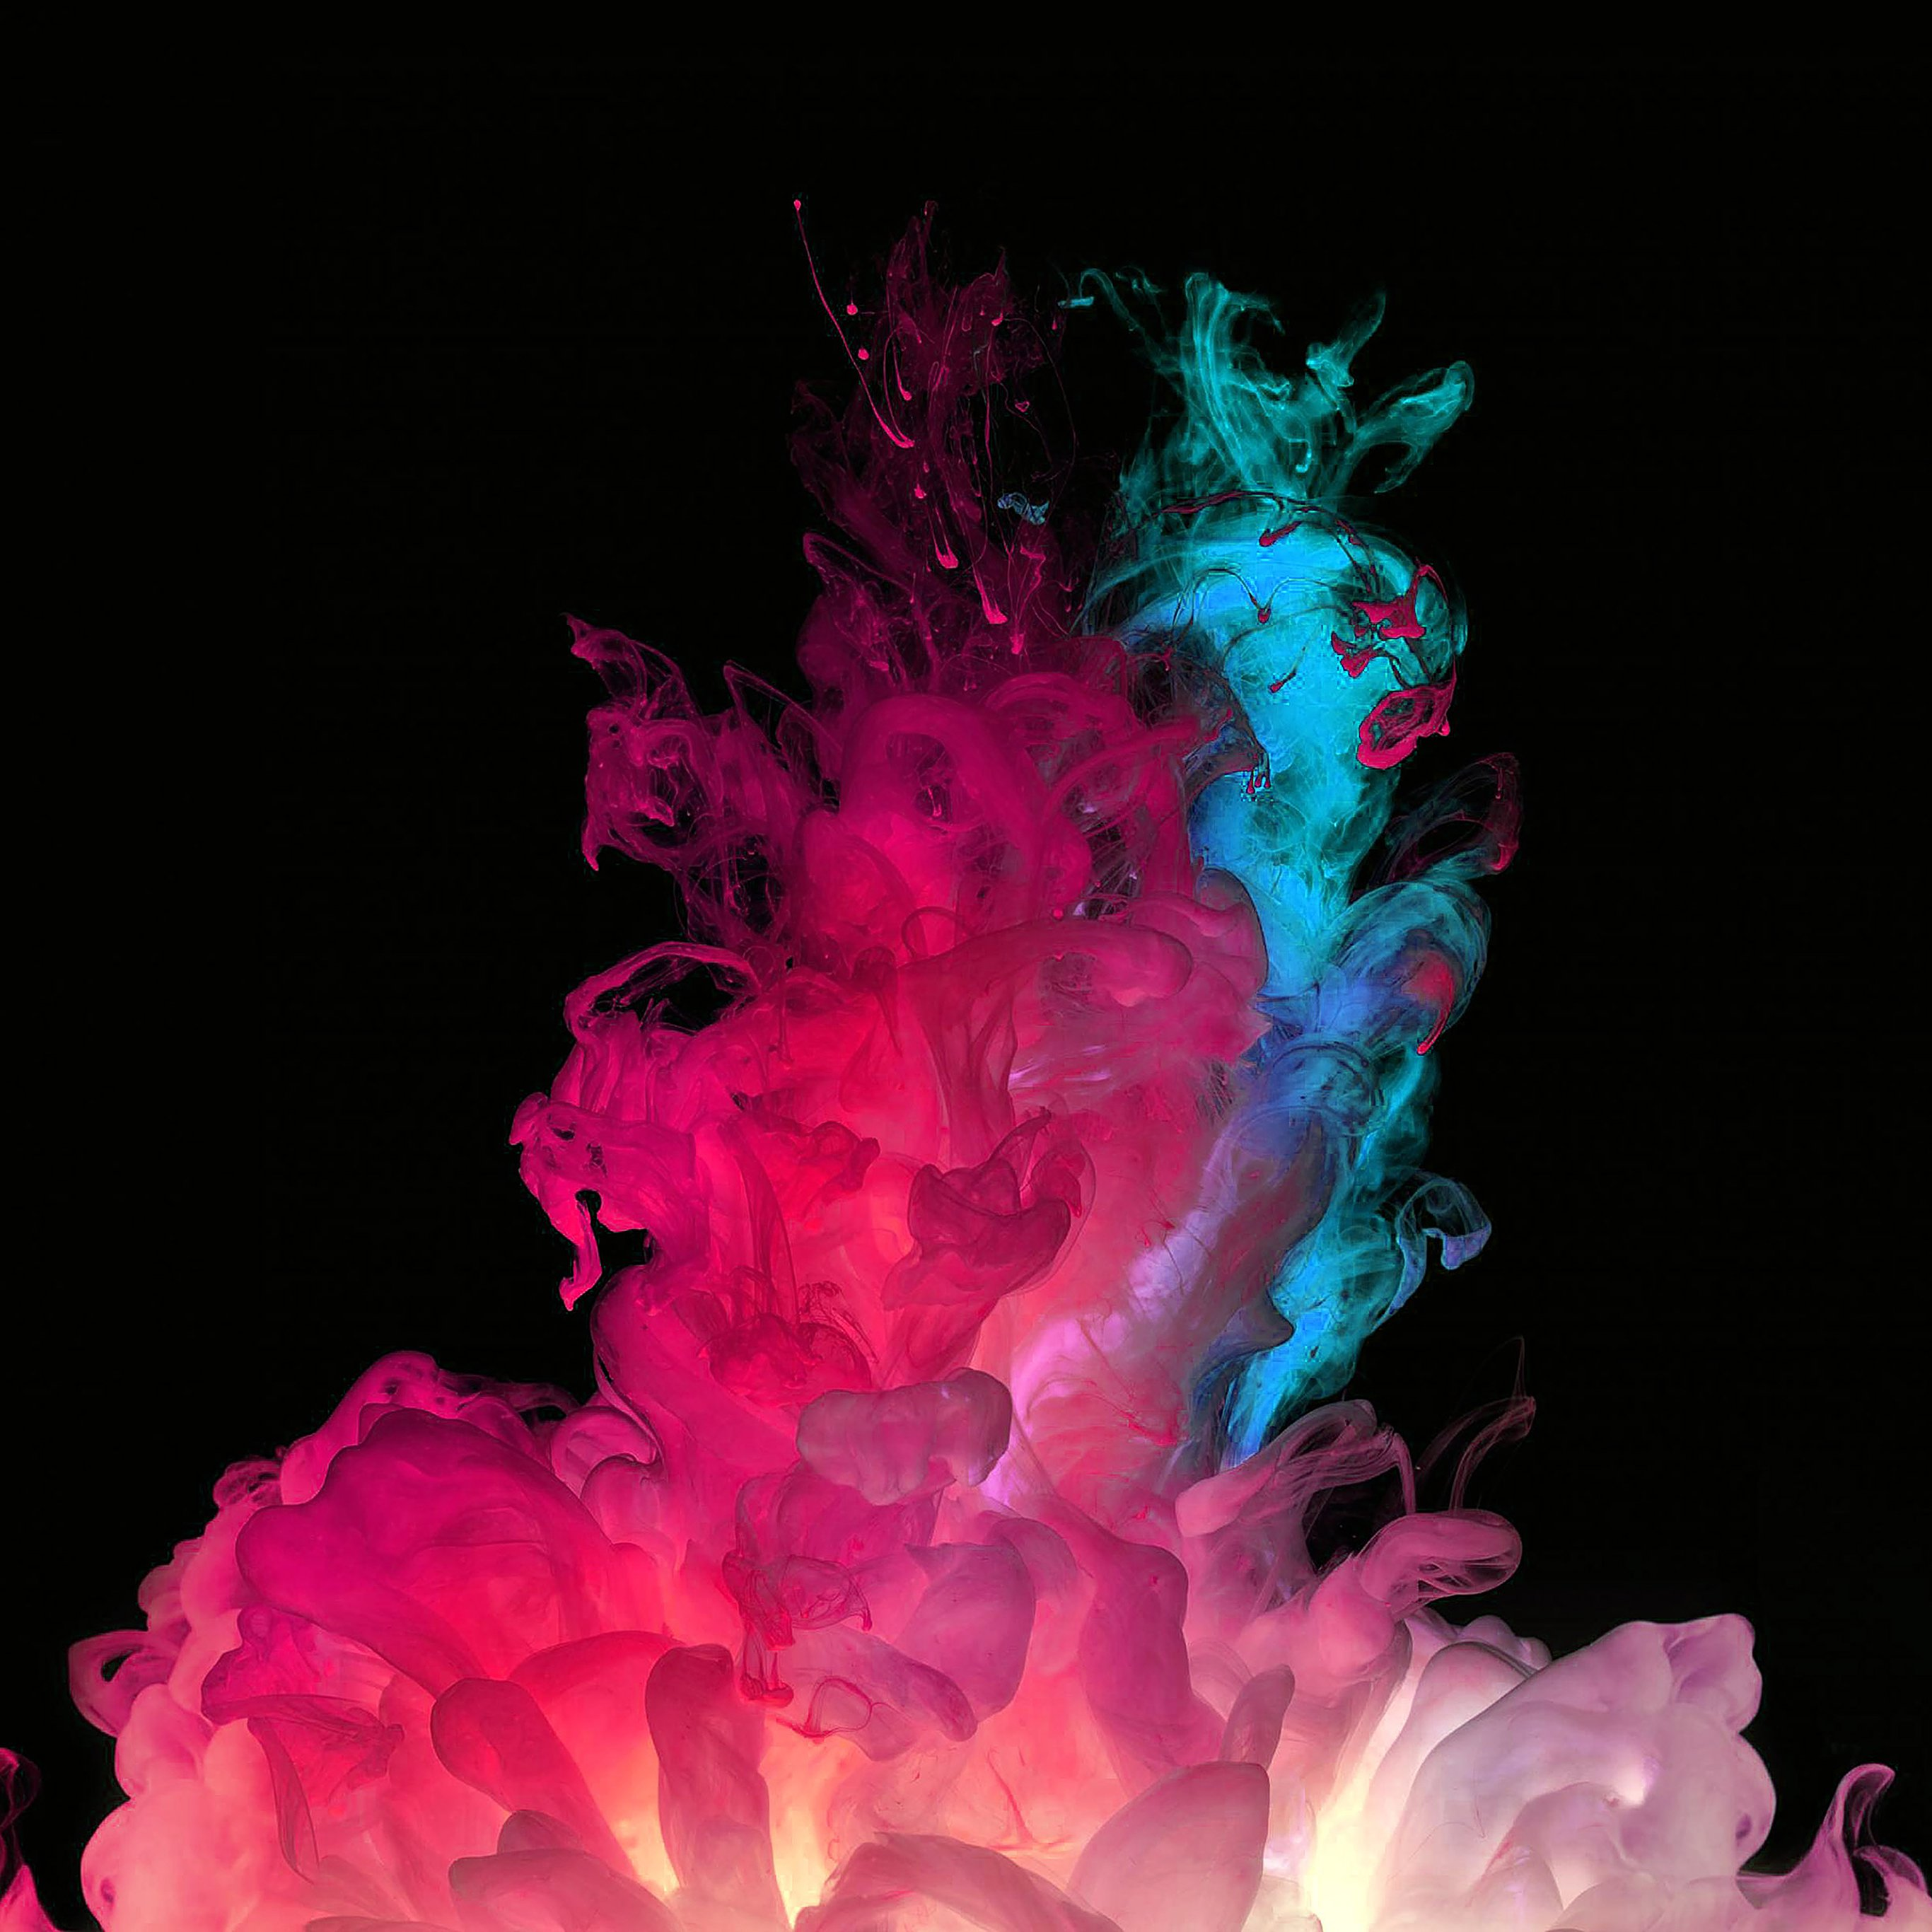 Pink And Blue Smoke 2385717 Hd Wallpaper Backgrounds Download